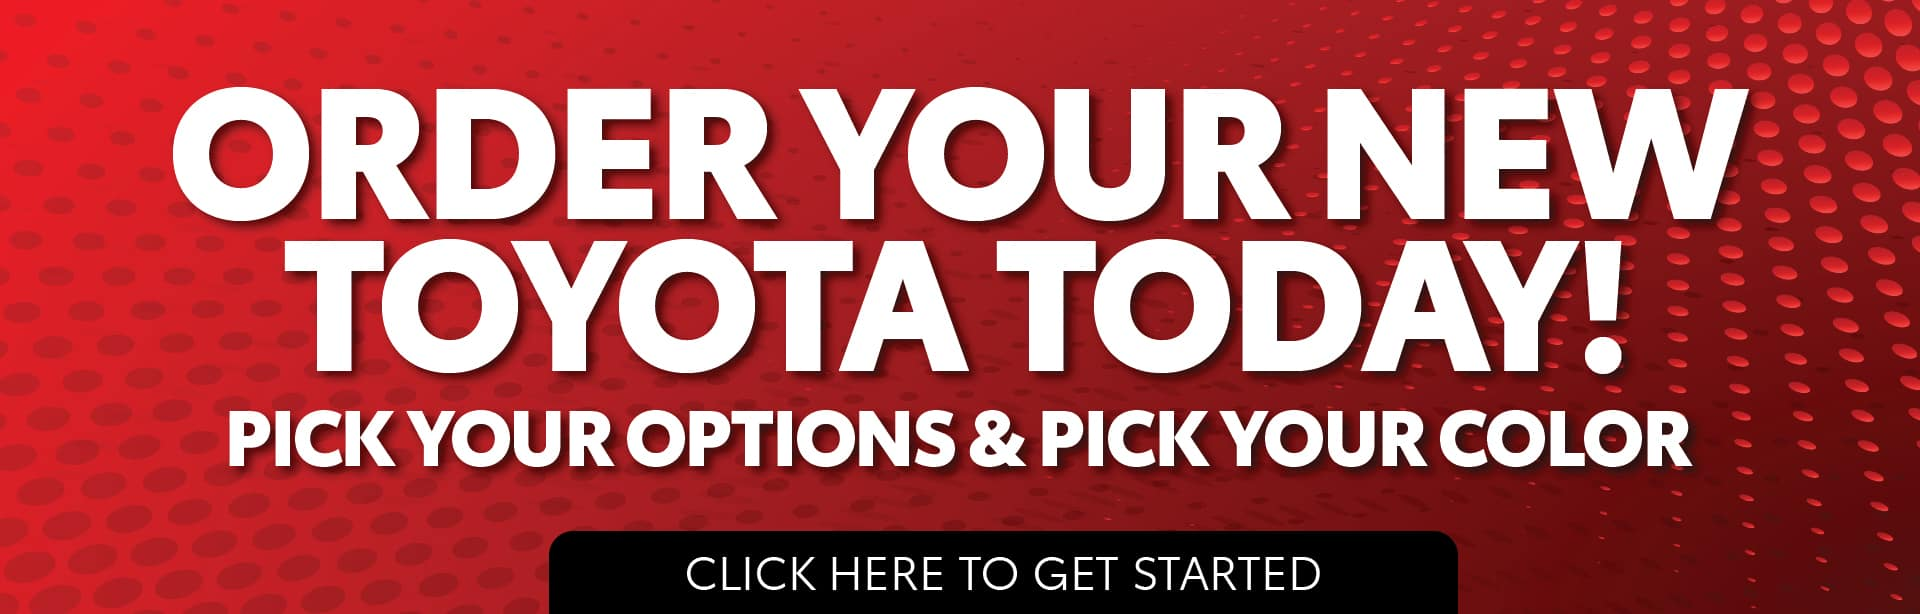 Order Your Vehicle with Penn Toyota